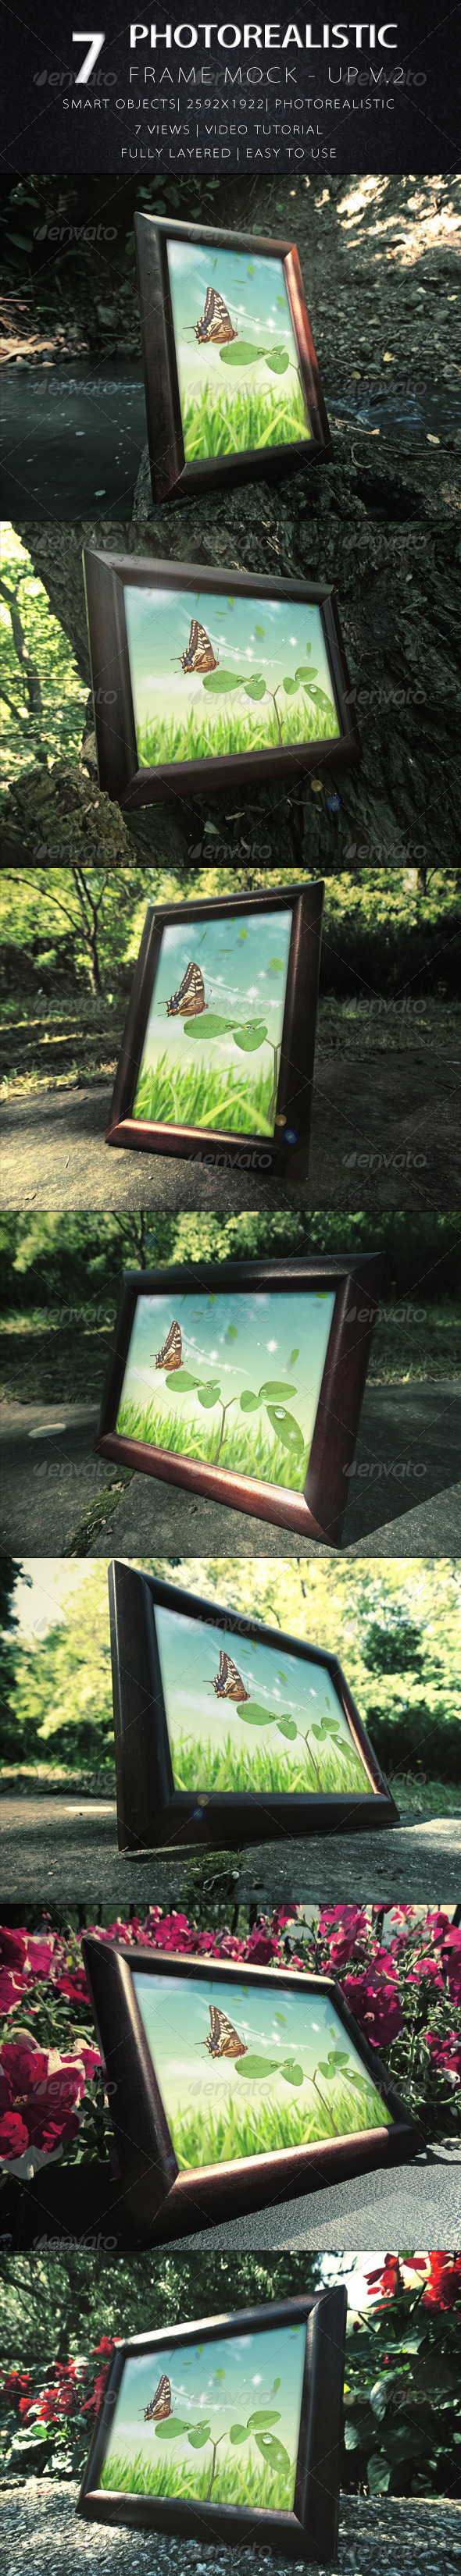 GraphicRiver Photorealistic Frame Mock Up Vol.2 8766069